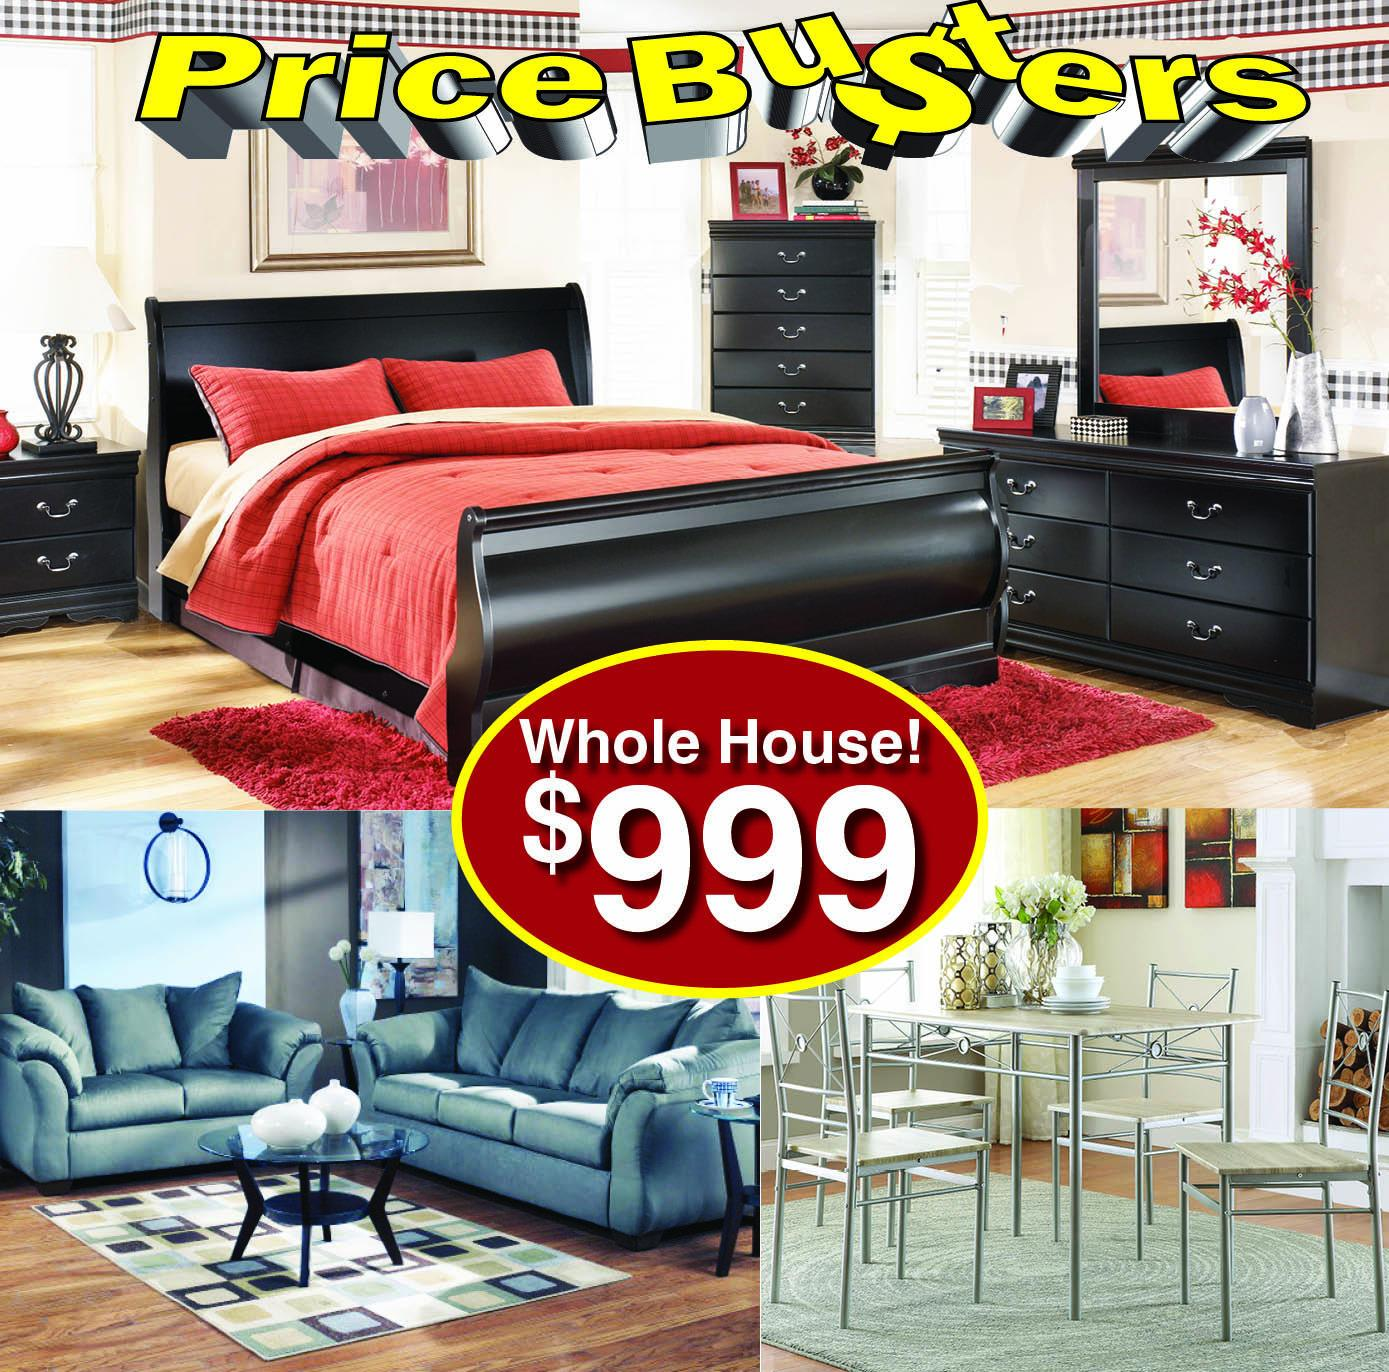 Furniture At Wholesale Prices: Price Busters Discount Furniture